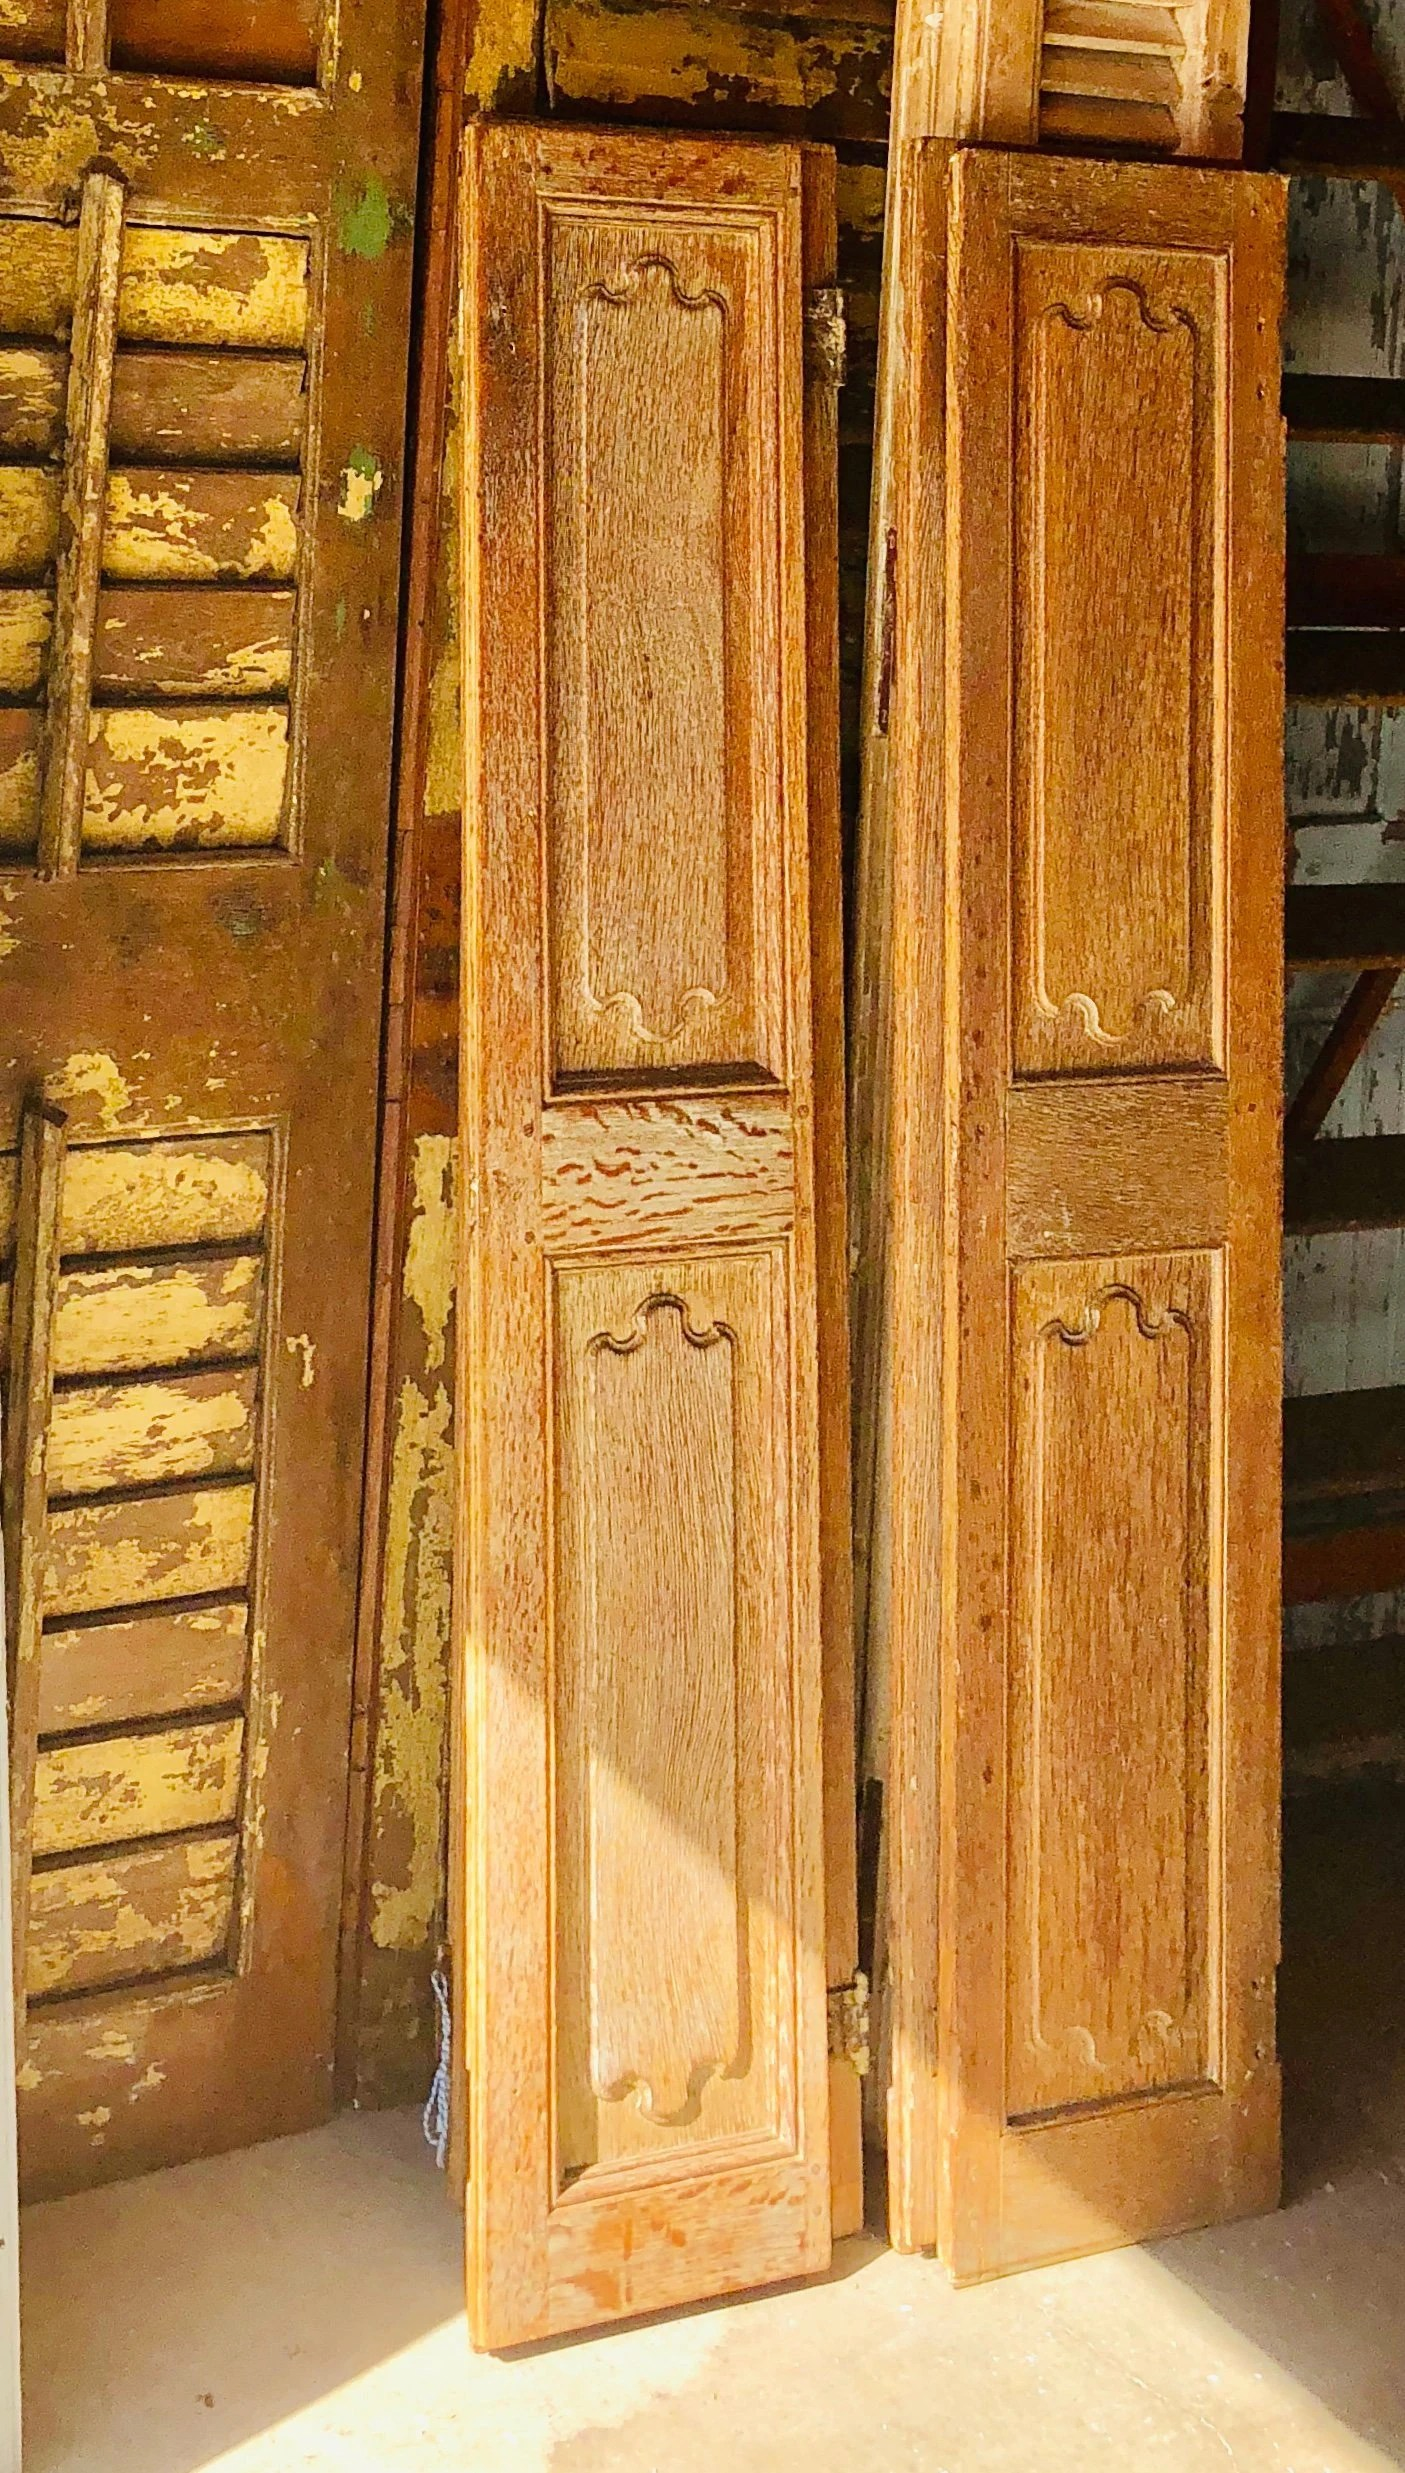 Pair Of 18th Century French Wooden Shutters Antique 18th Century French Interior Doors Shutters Hand Carved French Doors Hand Carved